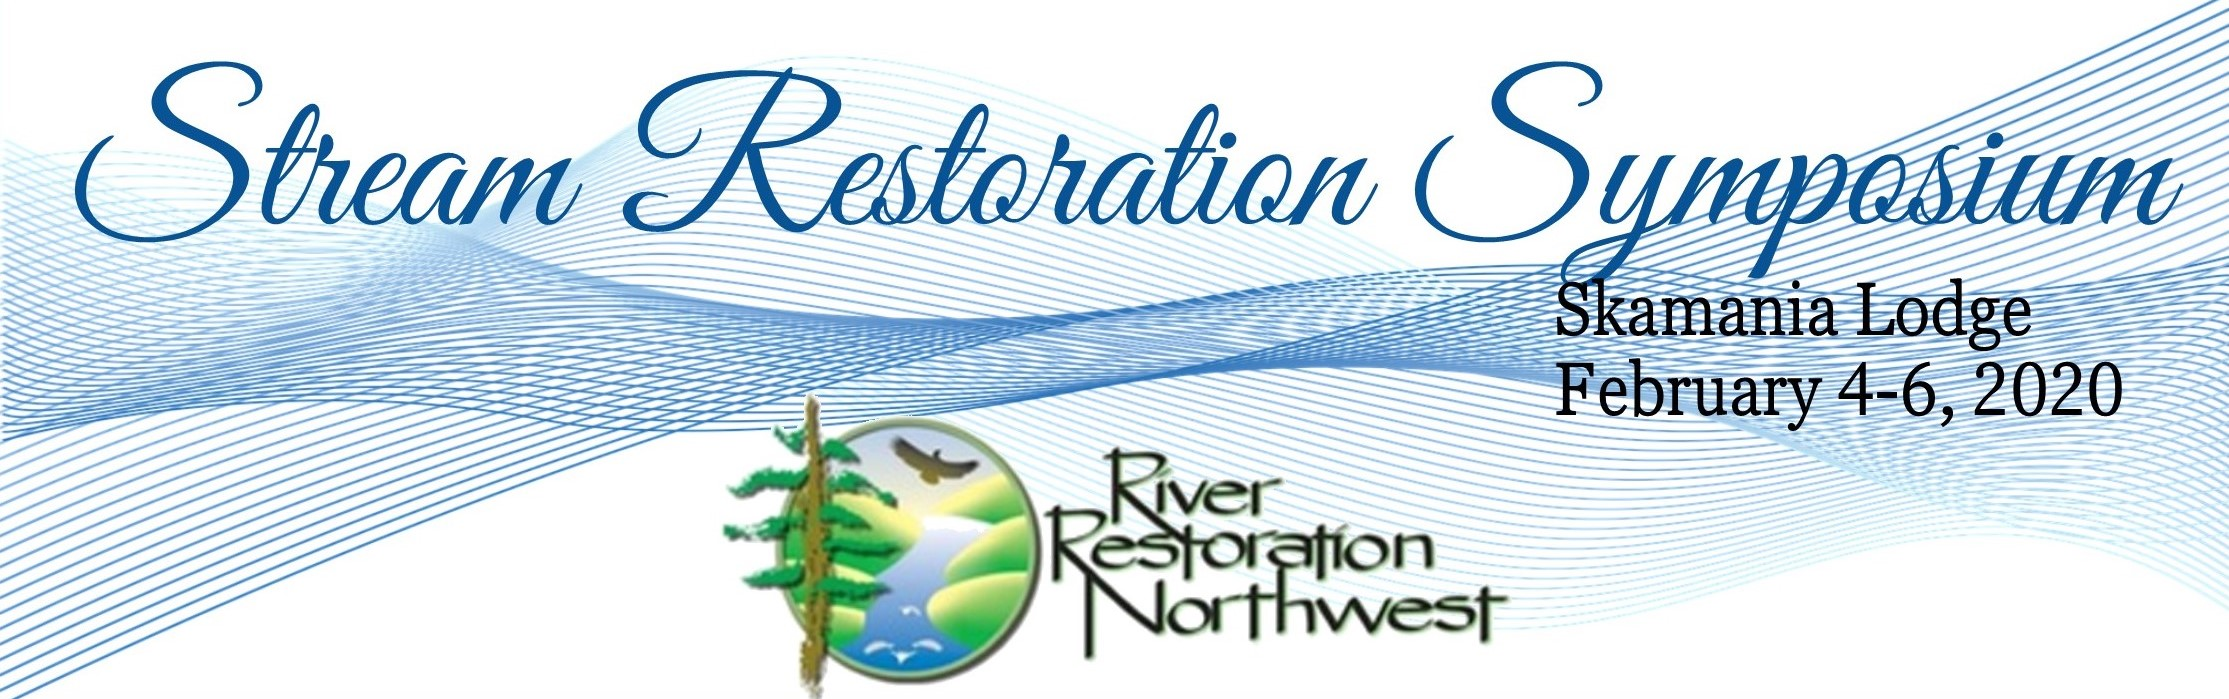 2020 RRNW Stream Restoration Symposium